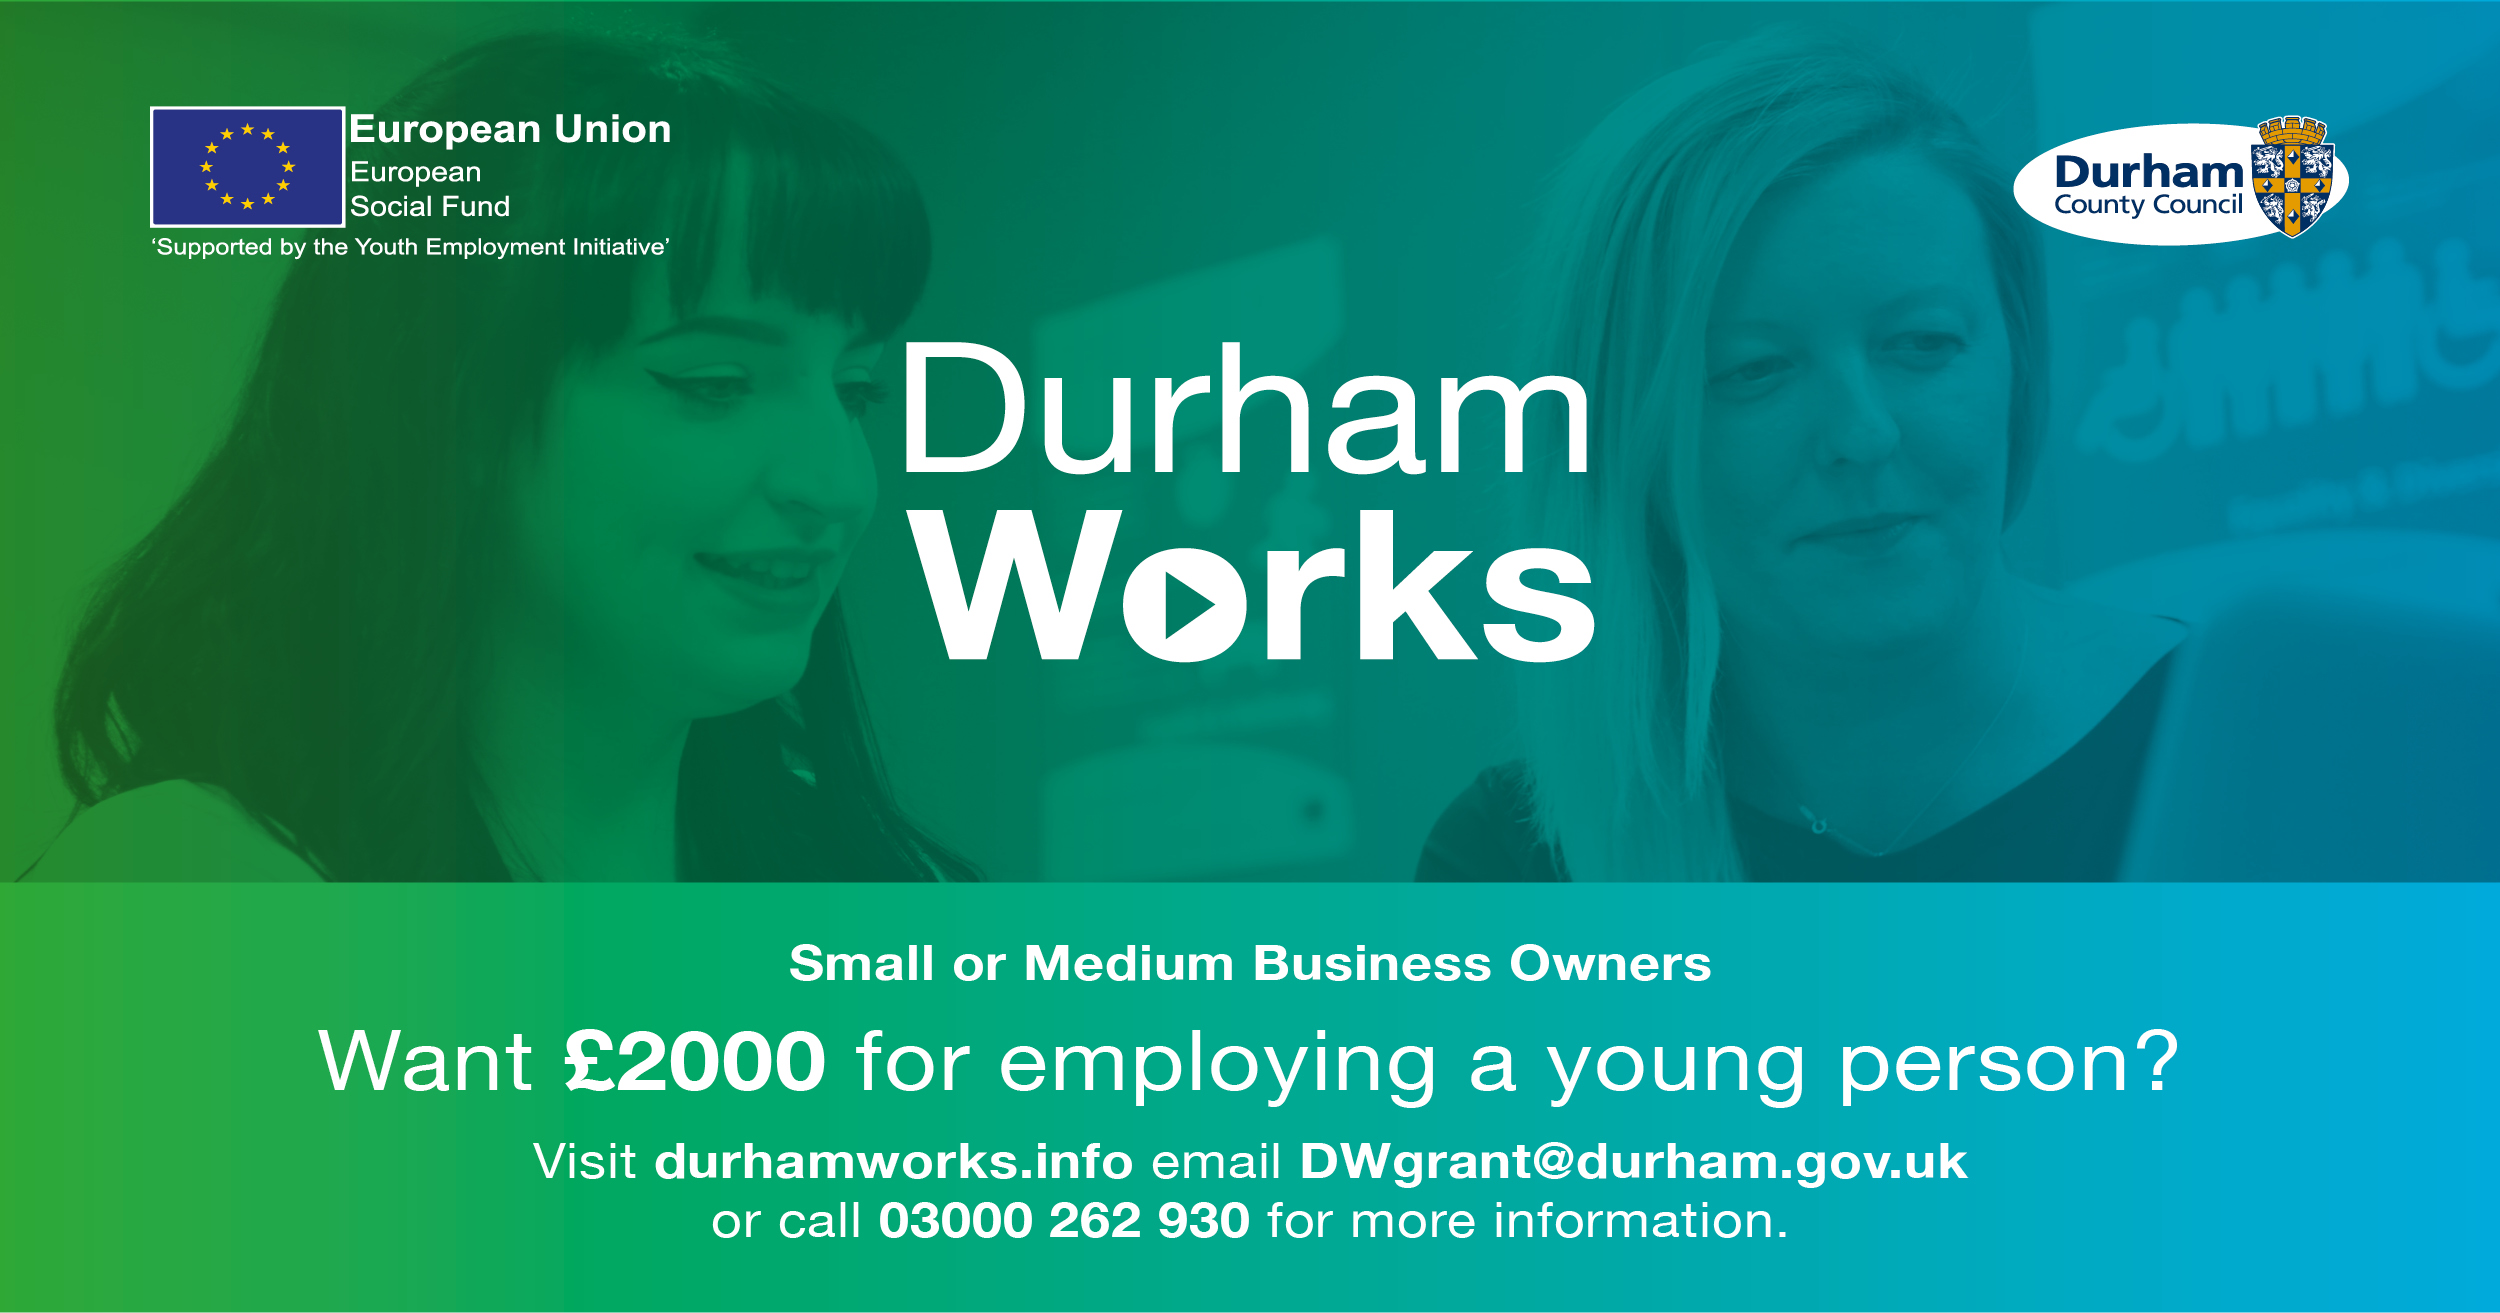 Last Chance to apply for the DurhamWorks Grant